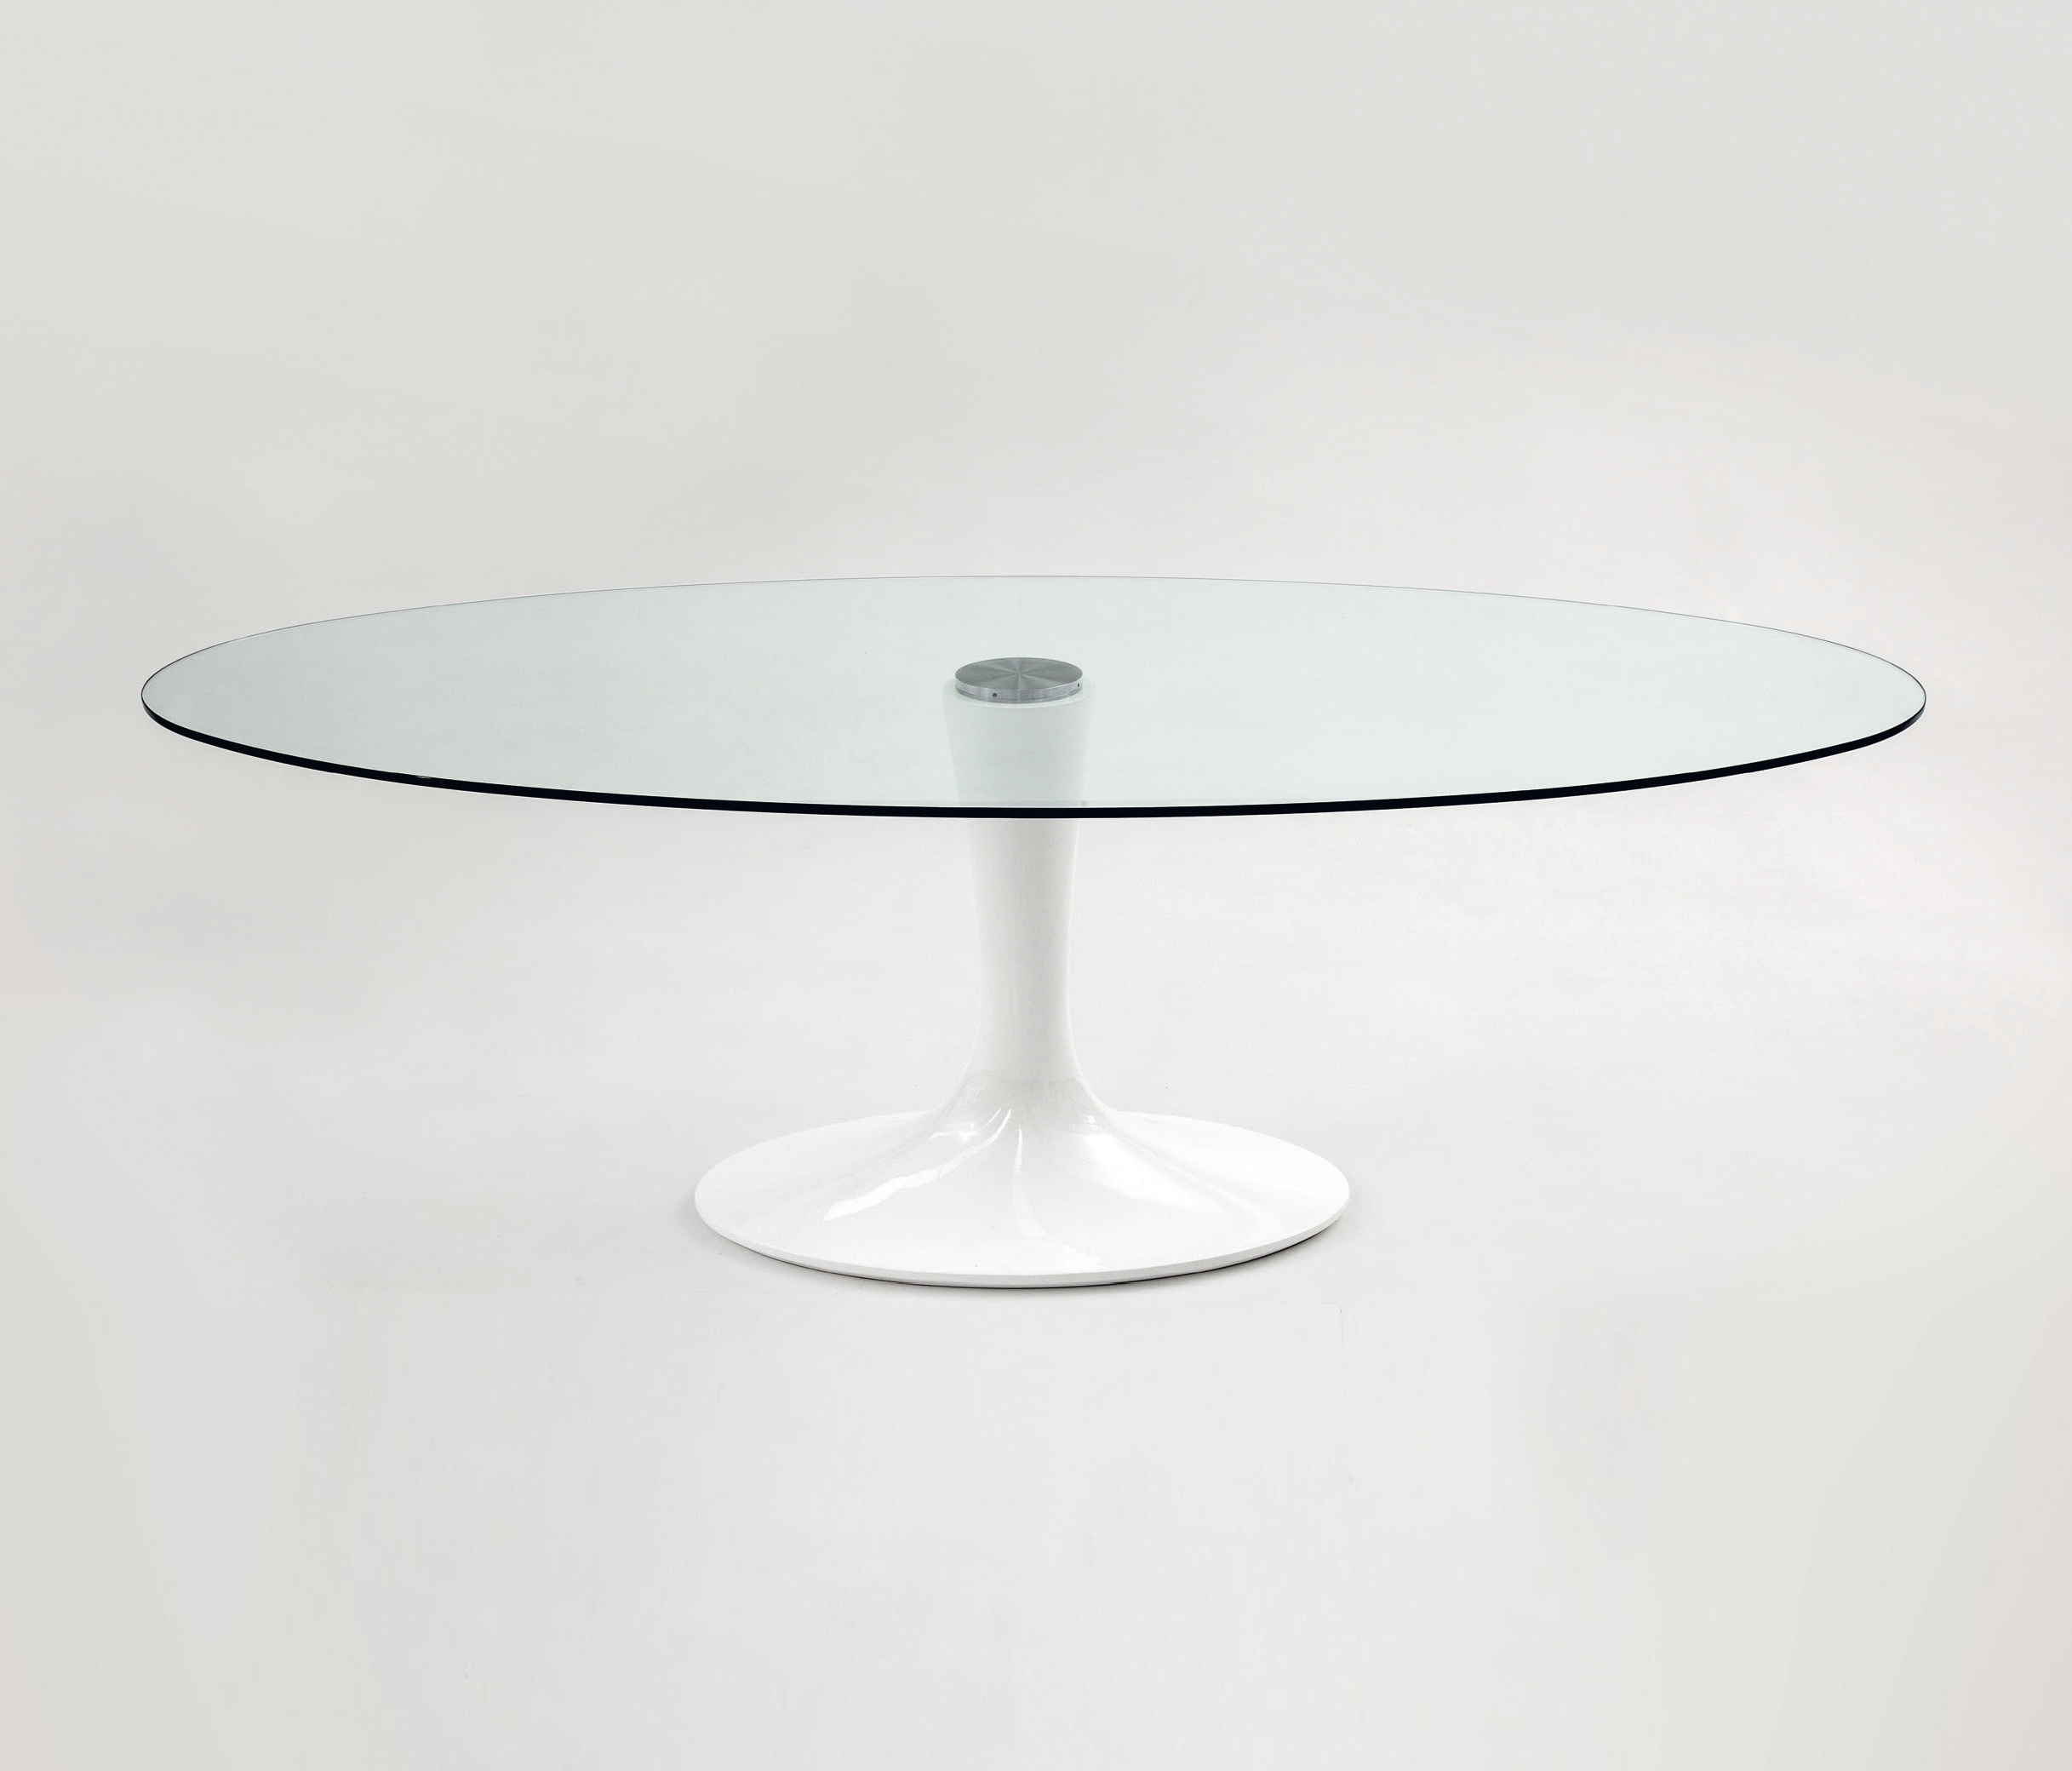 Architonic Pertaining To 2018 Imperial Dining Tables (View 3 of 25)